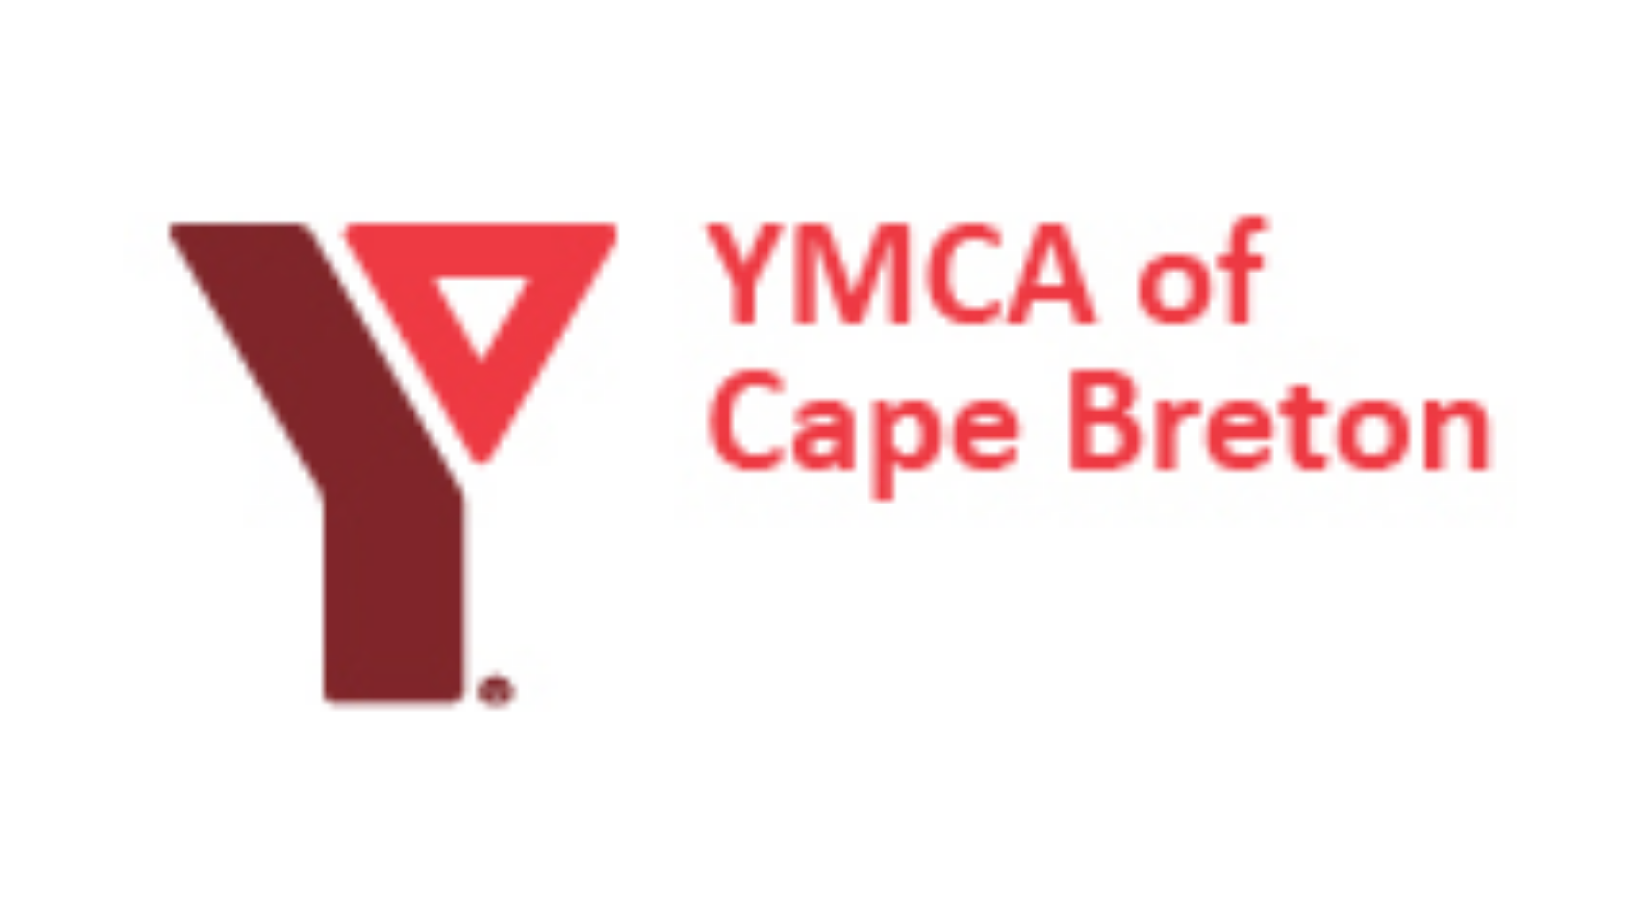 YMCA of Cape Breton Logo